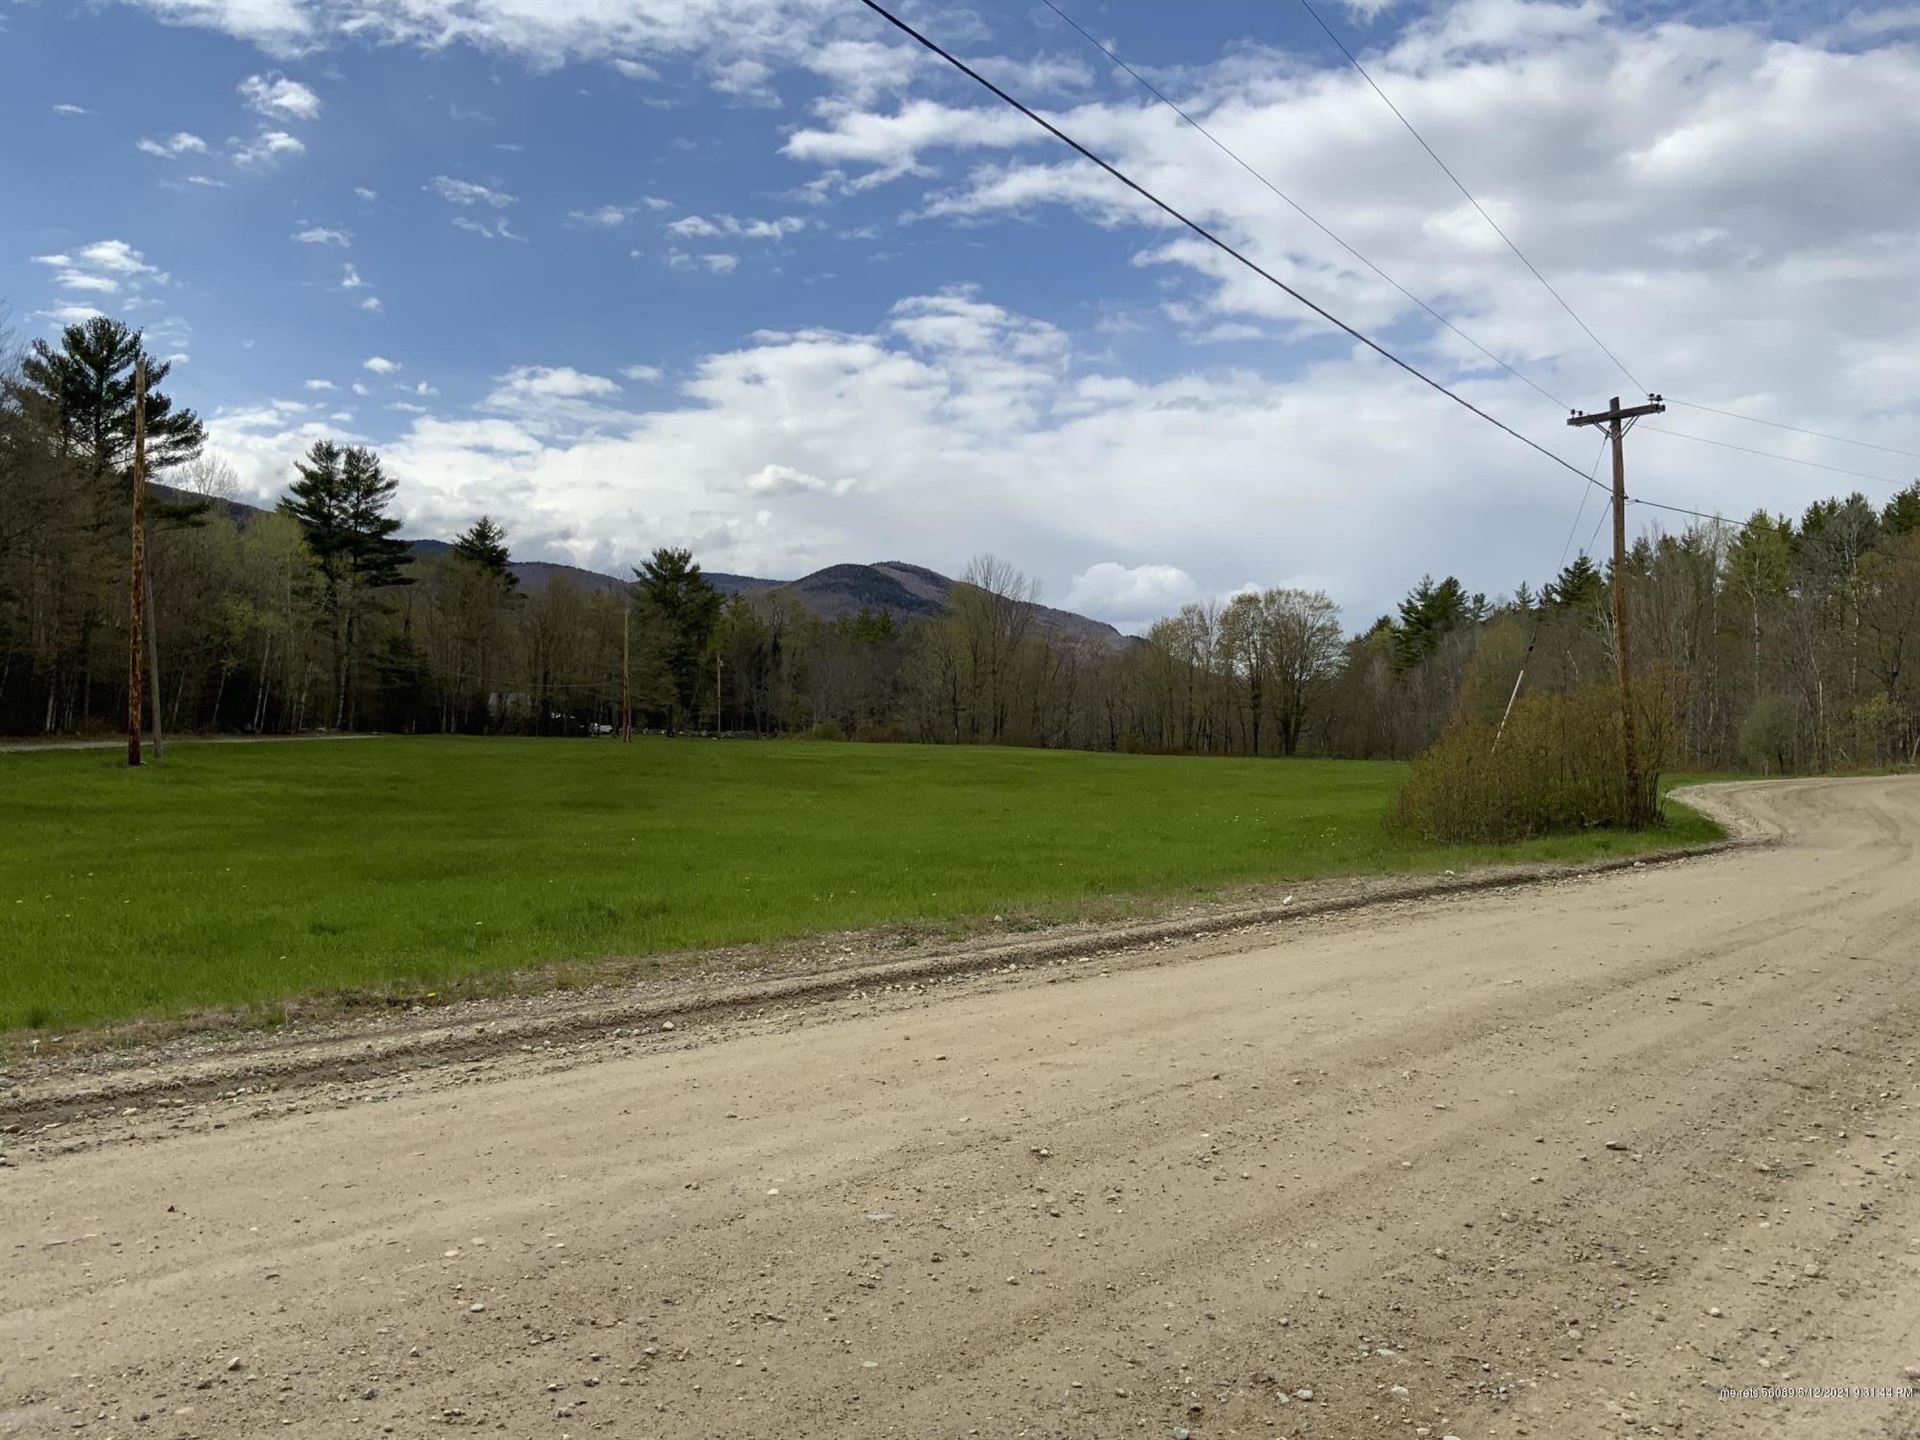 Photo of Lot 4 Sawyer Notch Road, Andover, ME 04216 (MLS # 1491385)